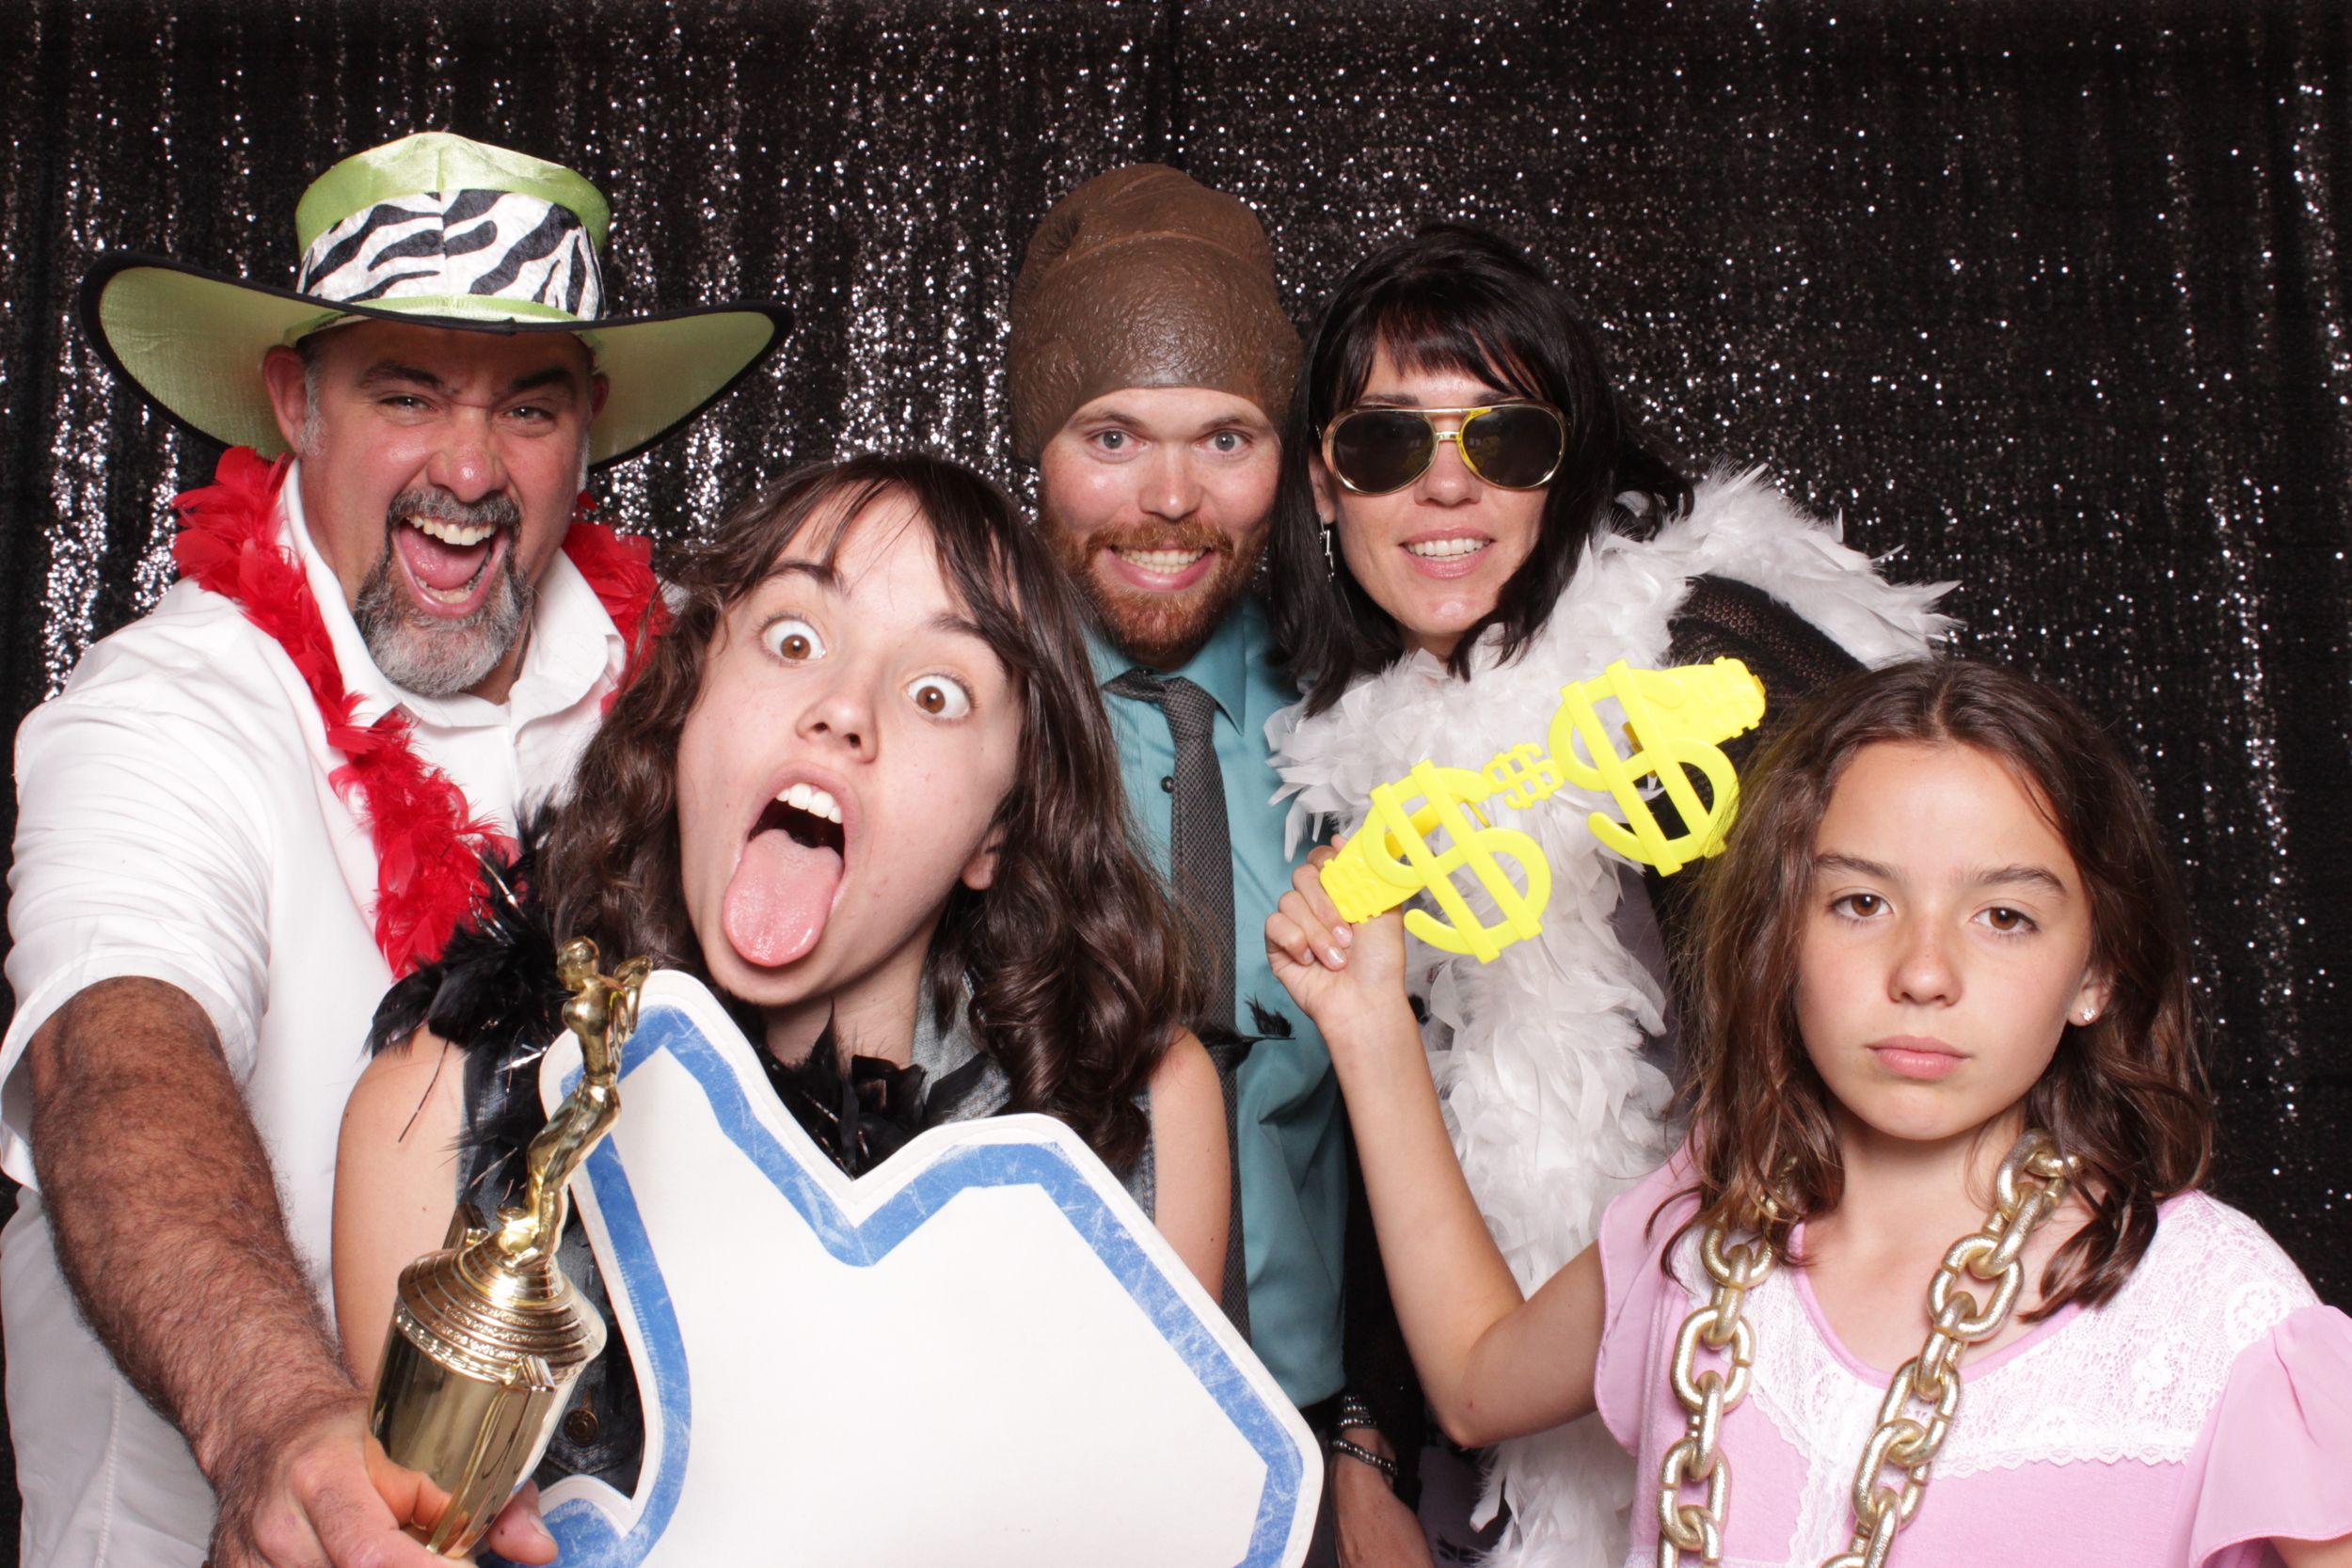 chico-open-air-photo-booth-style-crazy-fun